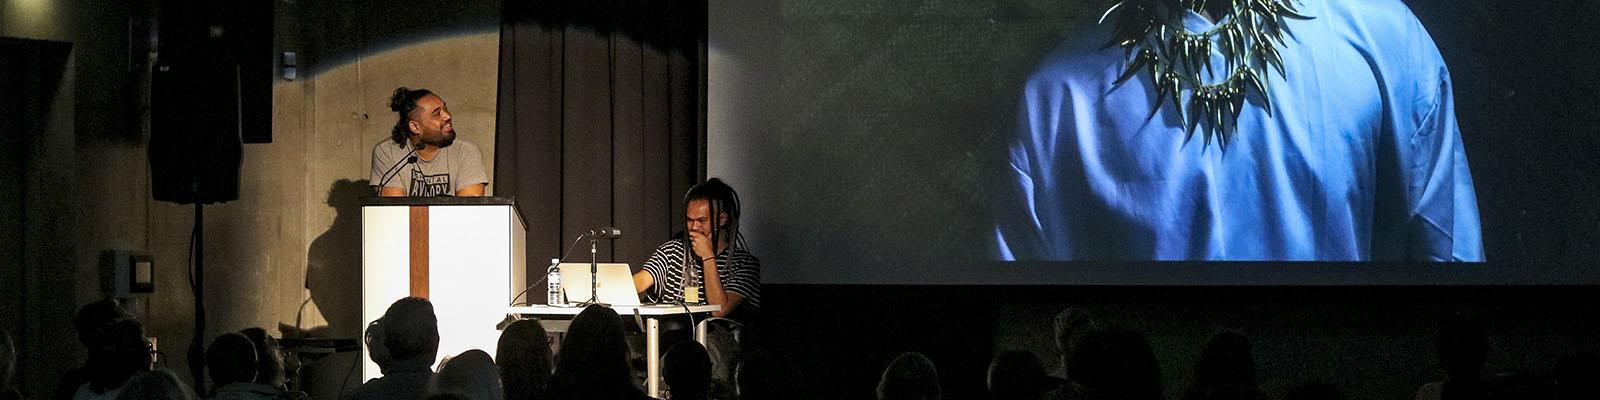 Jermaine Pati presenting at Ramp Festival